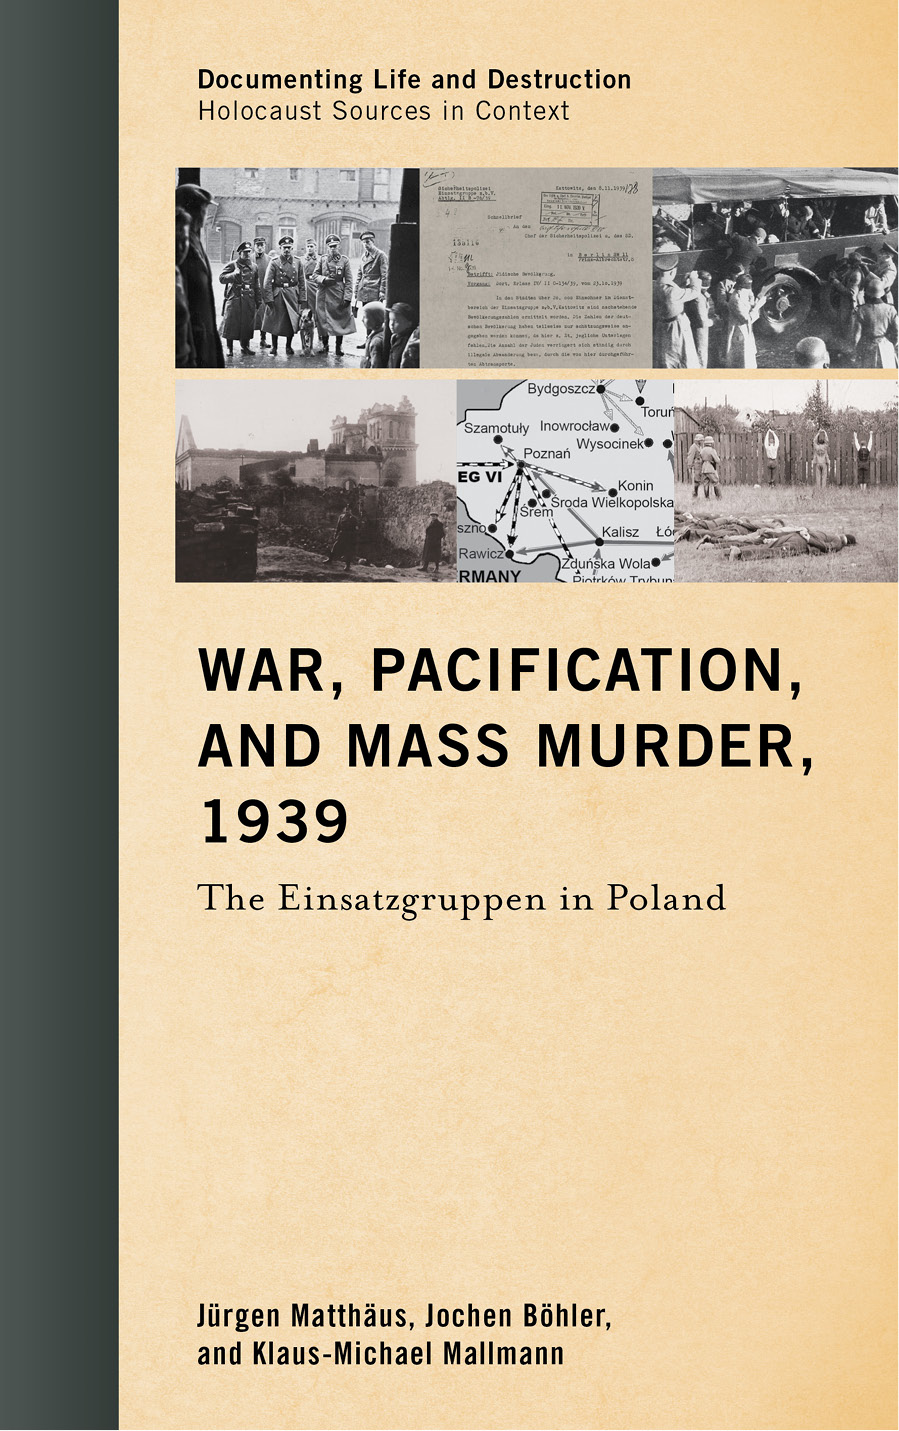 War, Pacification, and Mass Murder, 1939: The Einsatzgruppen in Poland free download